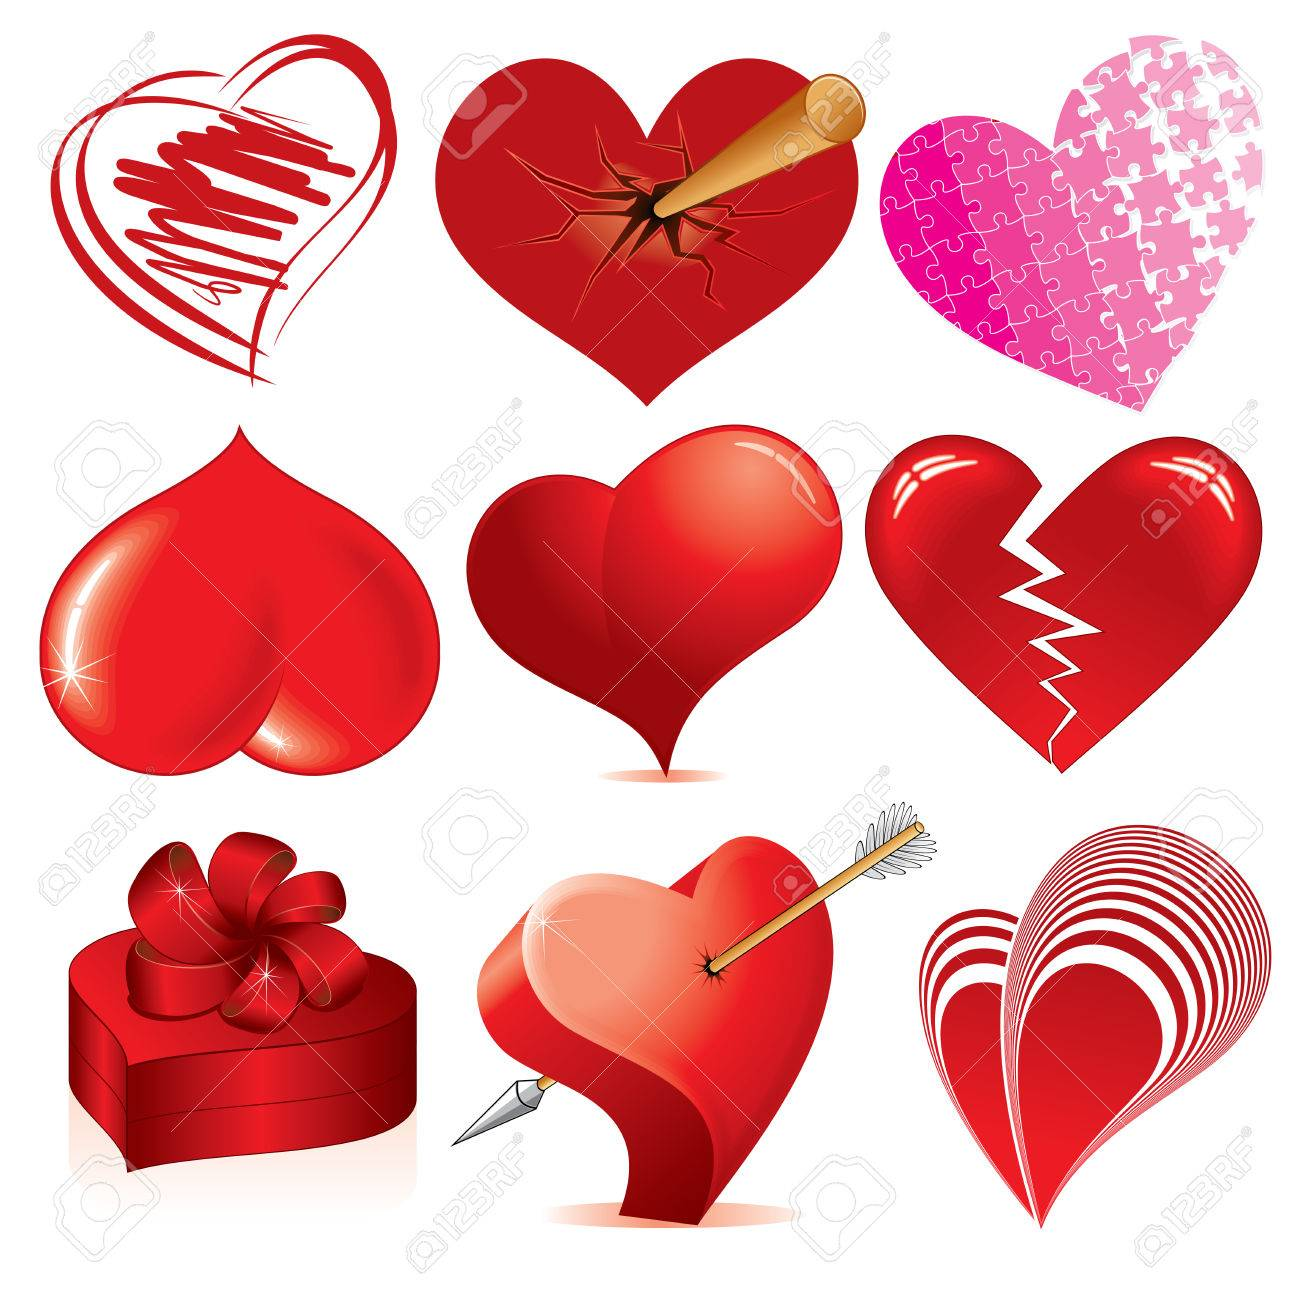 Collection of detailed hearts various stylized love symbols collection of detailed hearts various stylized love symbols for your design stock vector 7783061 biocorpaavc